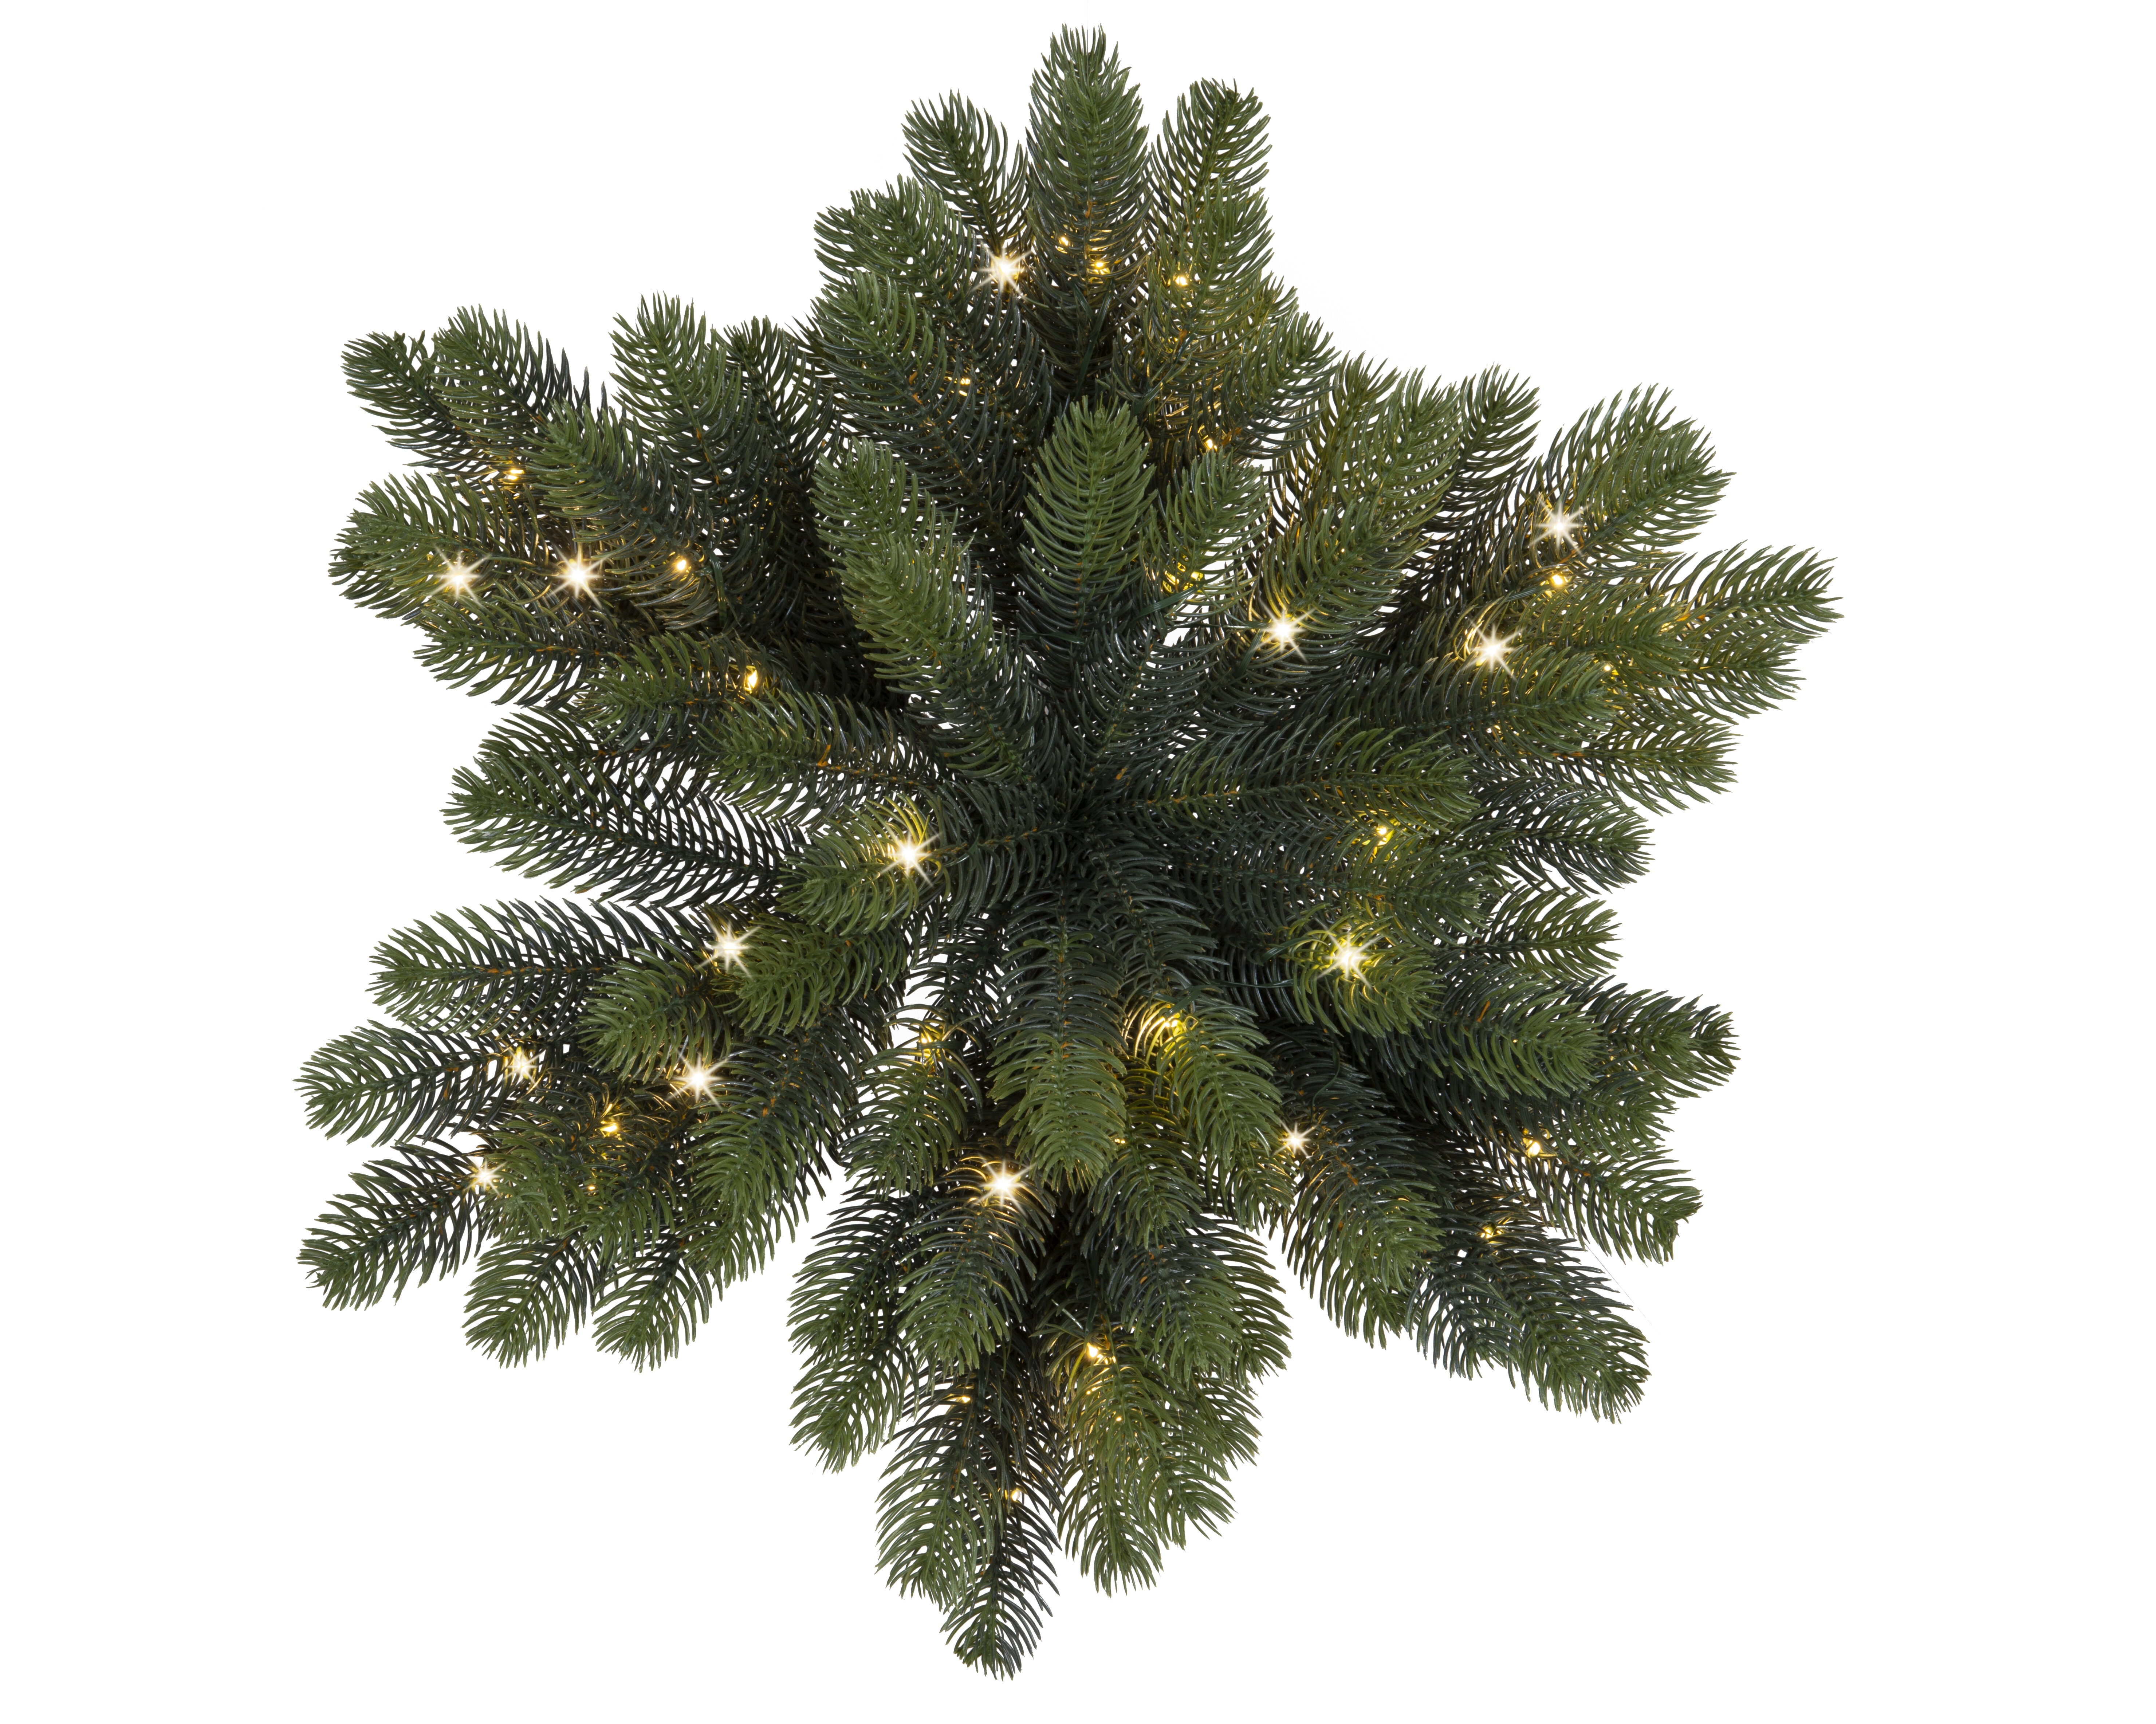 The Holiday Aisle Star Shaped Pinecone Pre Lit Swag With Warm Lights Wayfair Ca